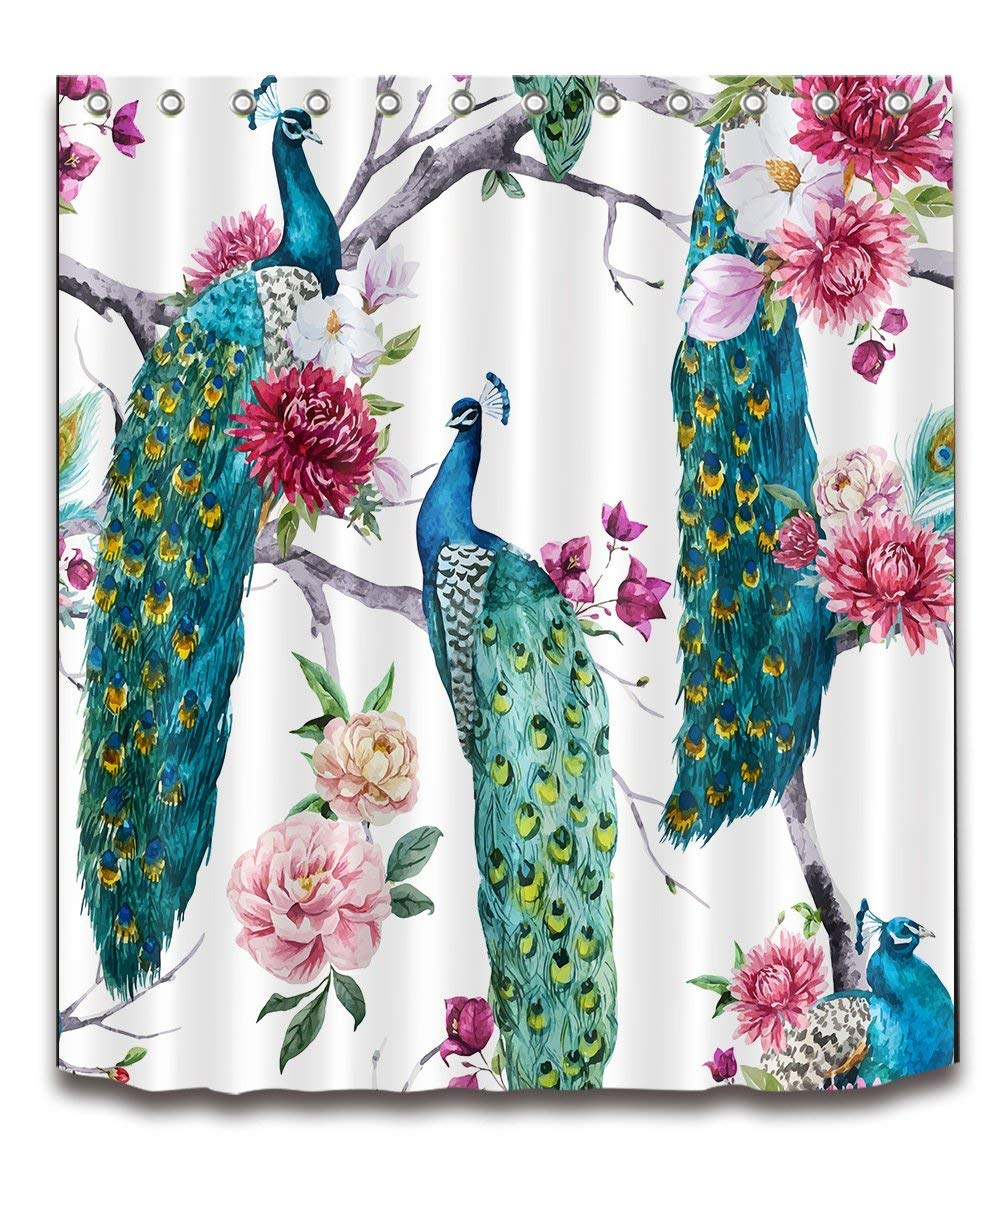 Cheap Peacock Curtain Fabric Find Peacock Curtain Fabric Deals On Line At Alibaba Com